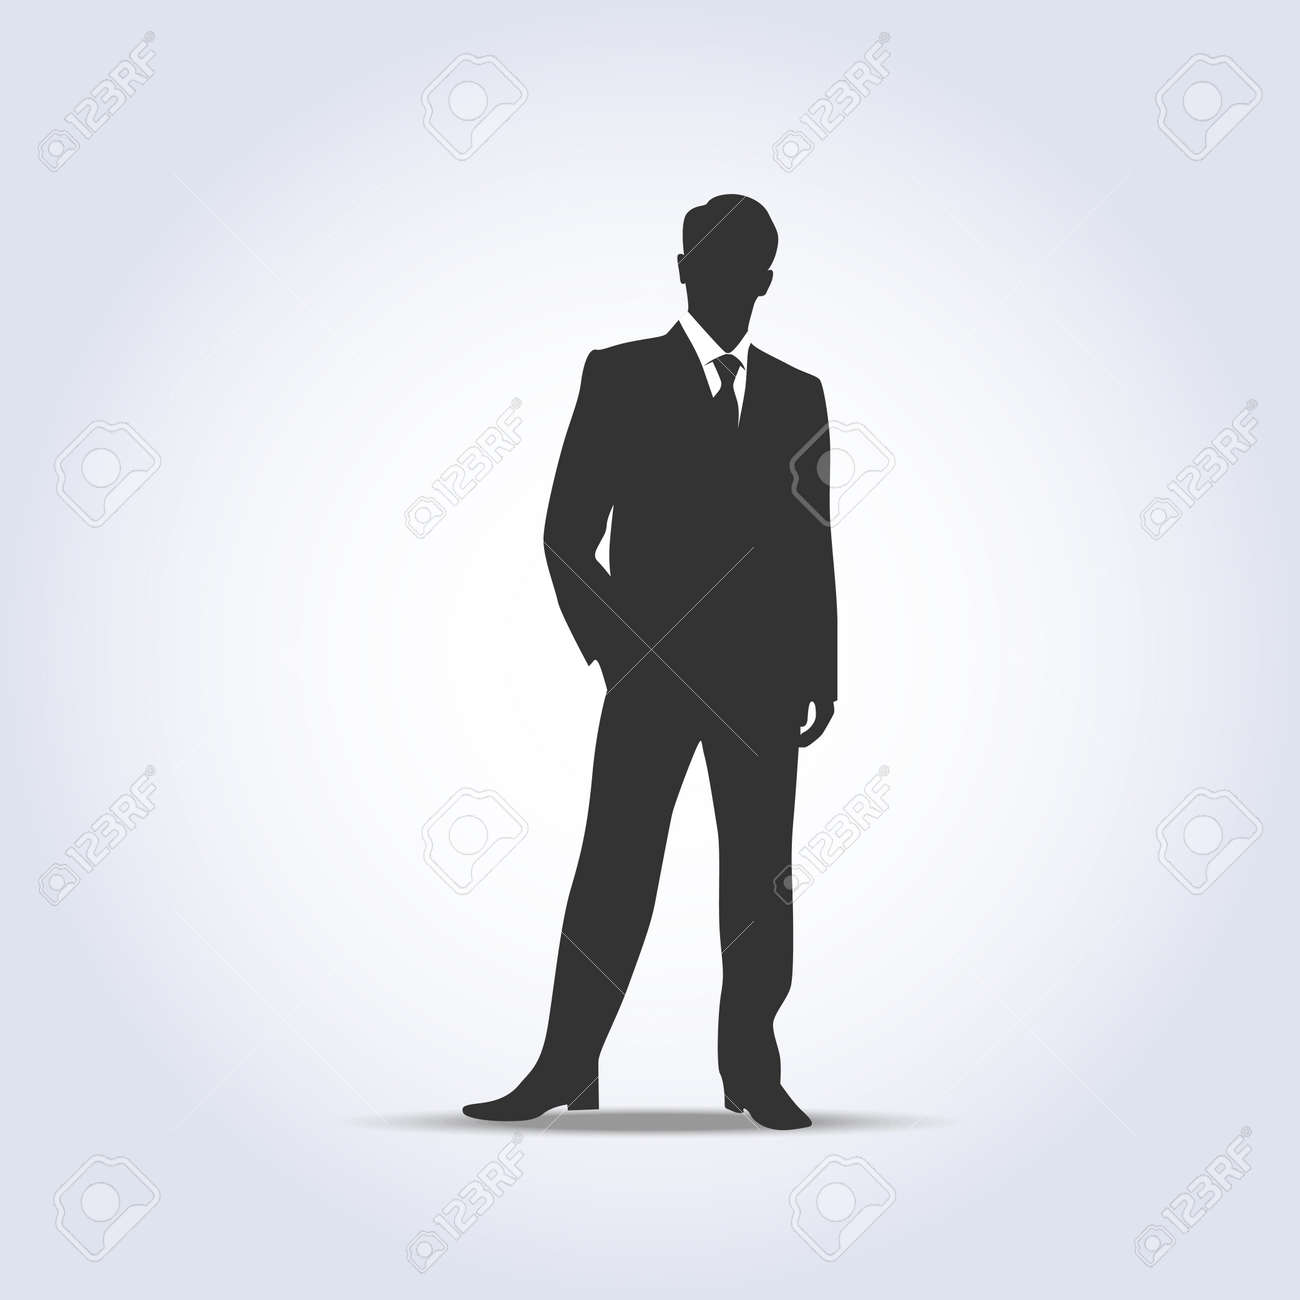 Standing businessman silhouette gray color Stock Vector - 34138279